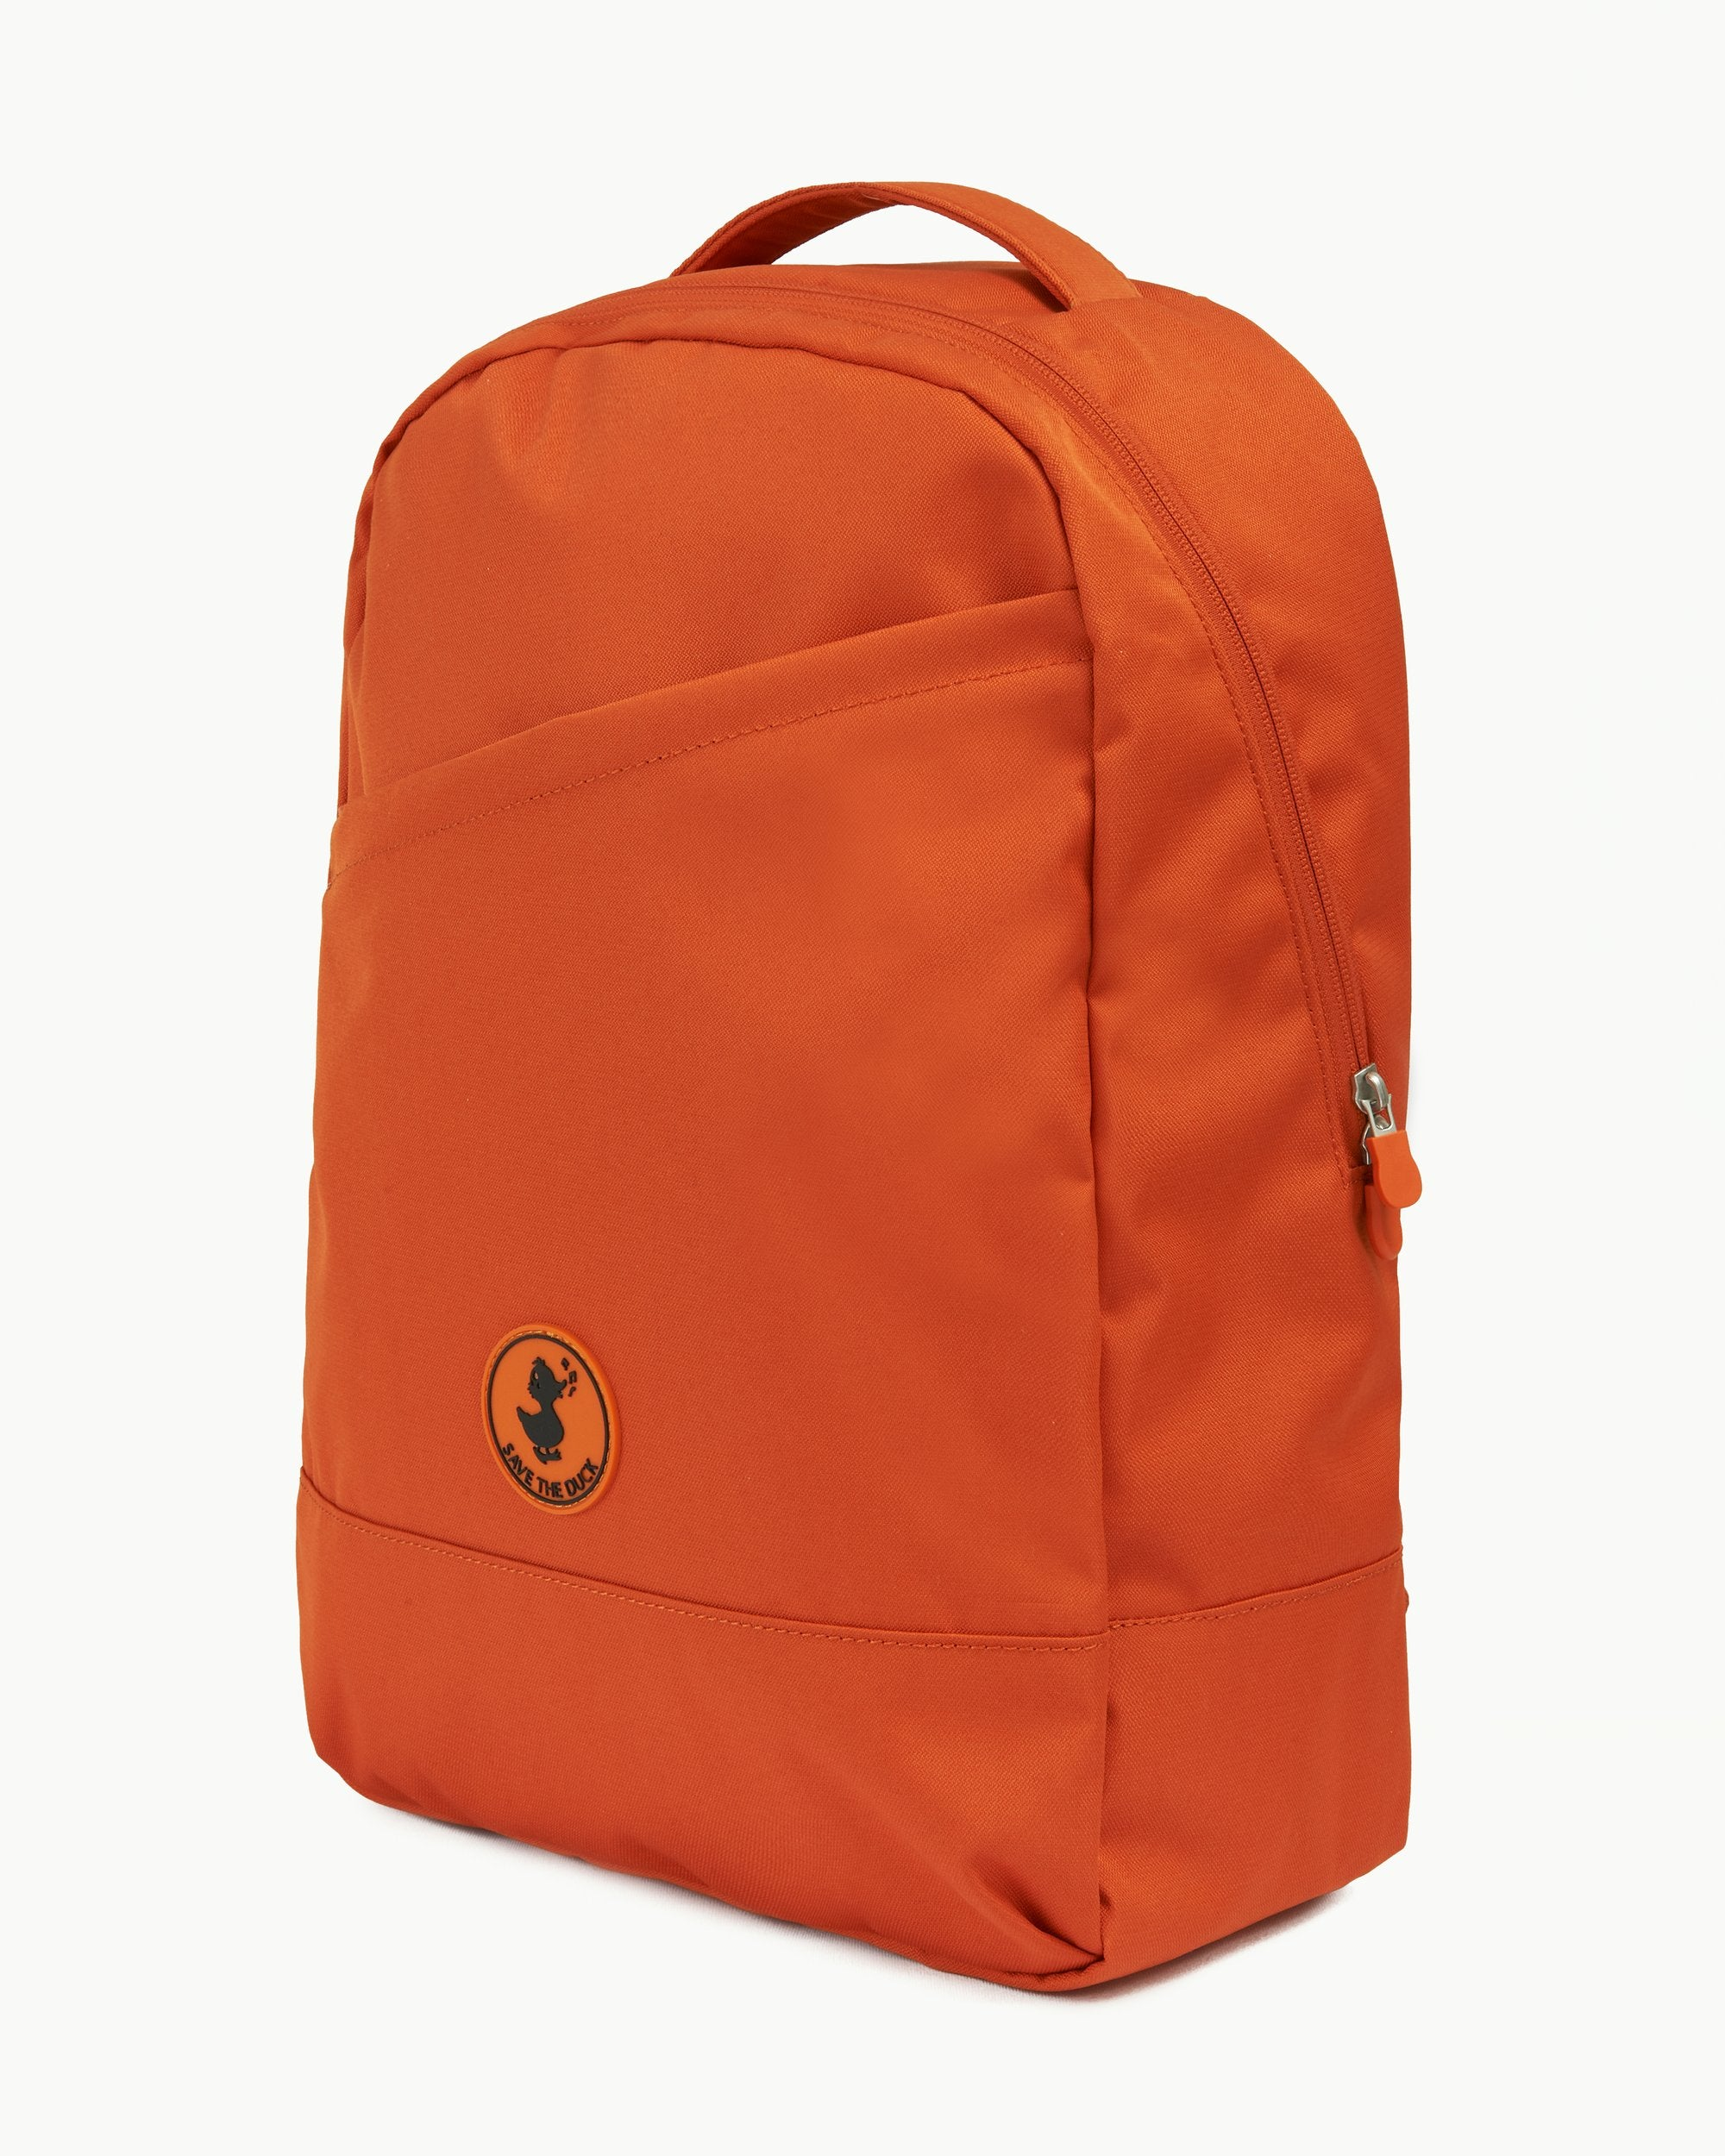 CRUELTY FREE BACKPACK MADE FROM RECYCLED PLASTIC BOTTLES Maple Orange